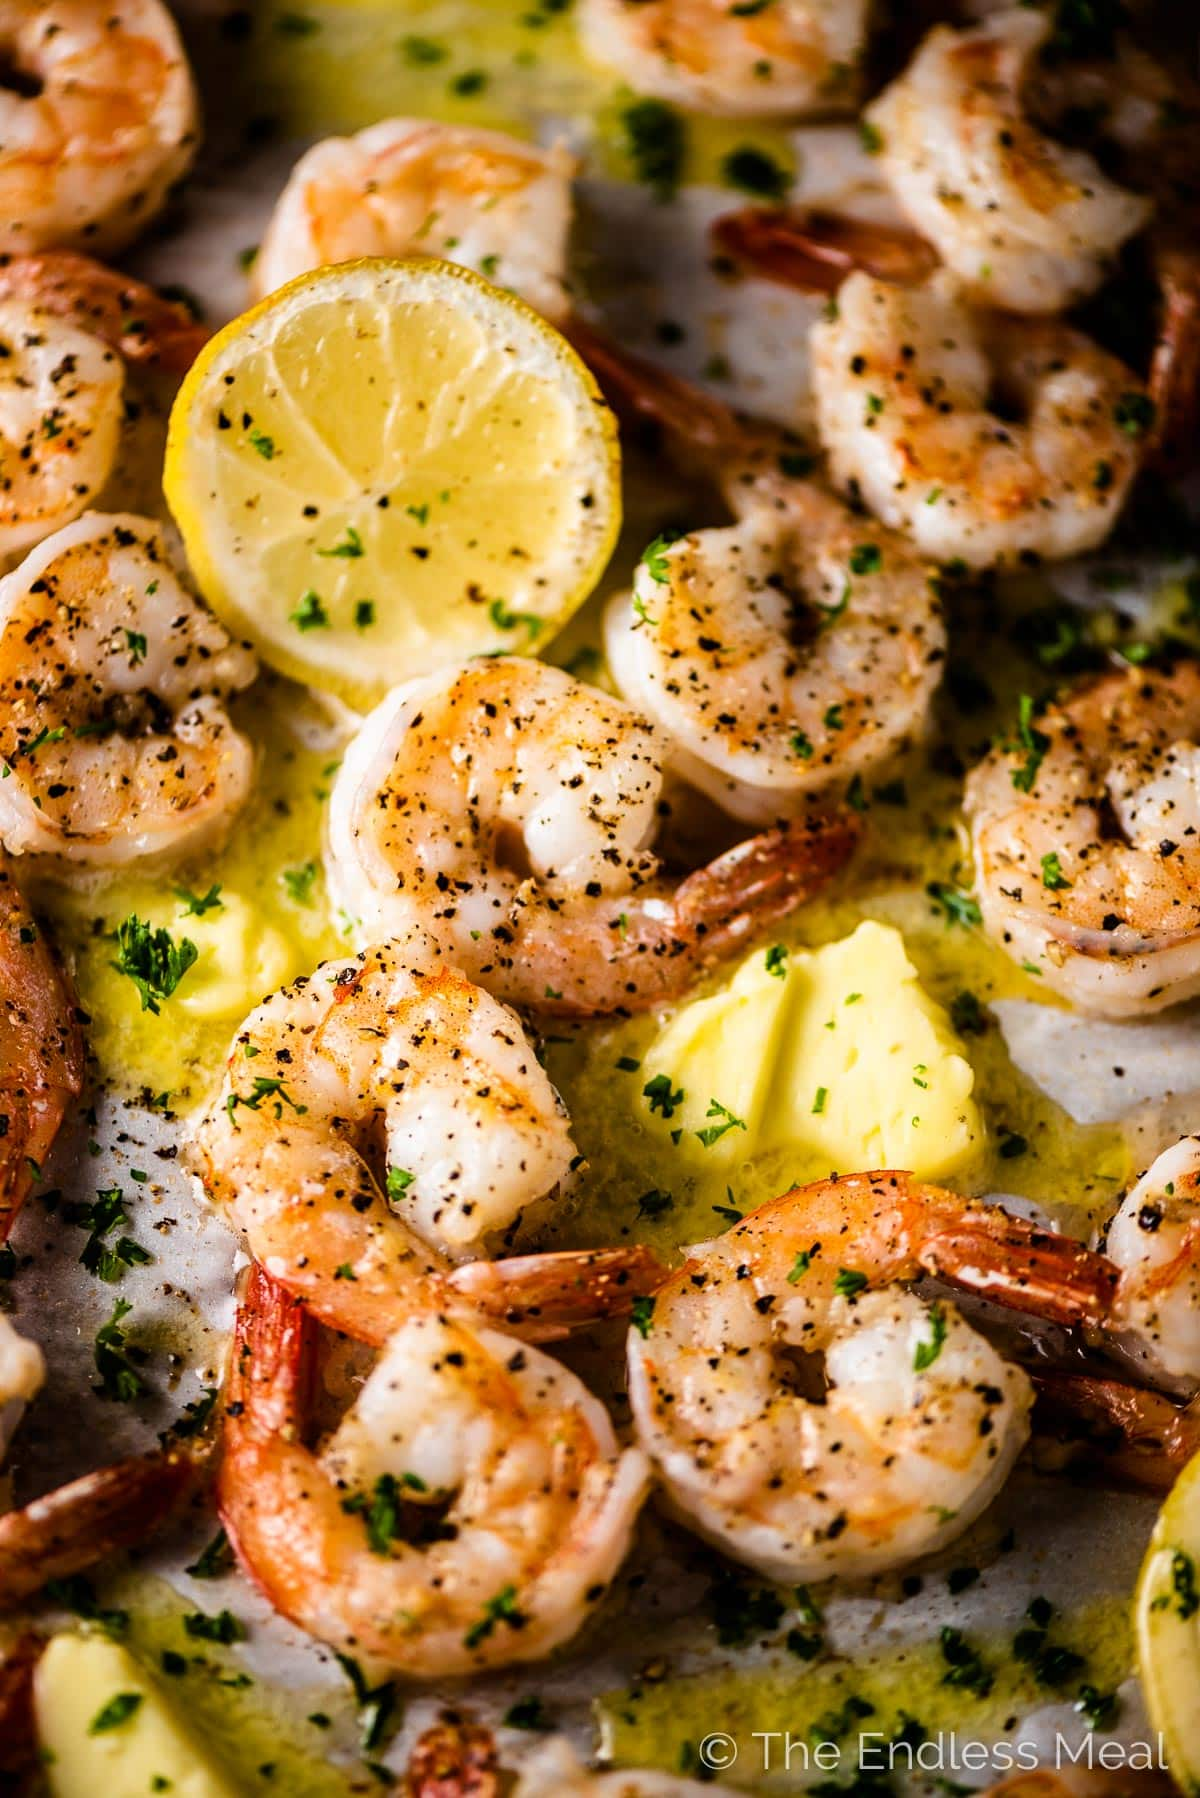 Garlic butter baked shrimp on a tray with slices of lemon and pats of butter.